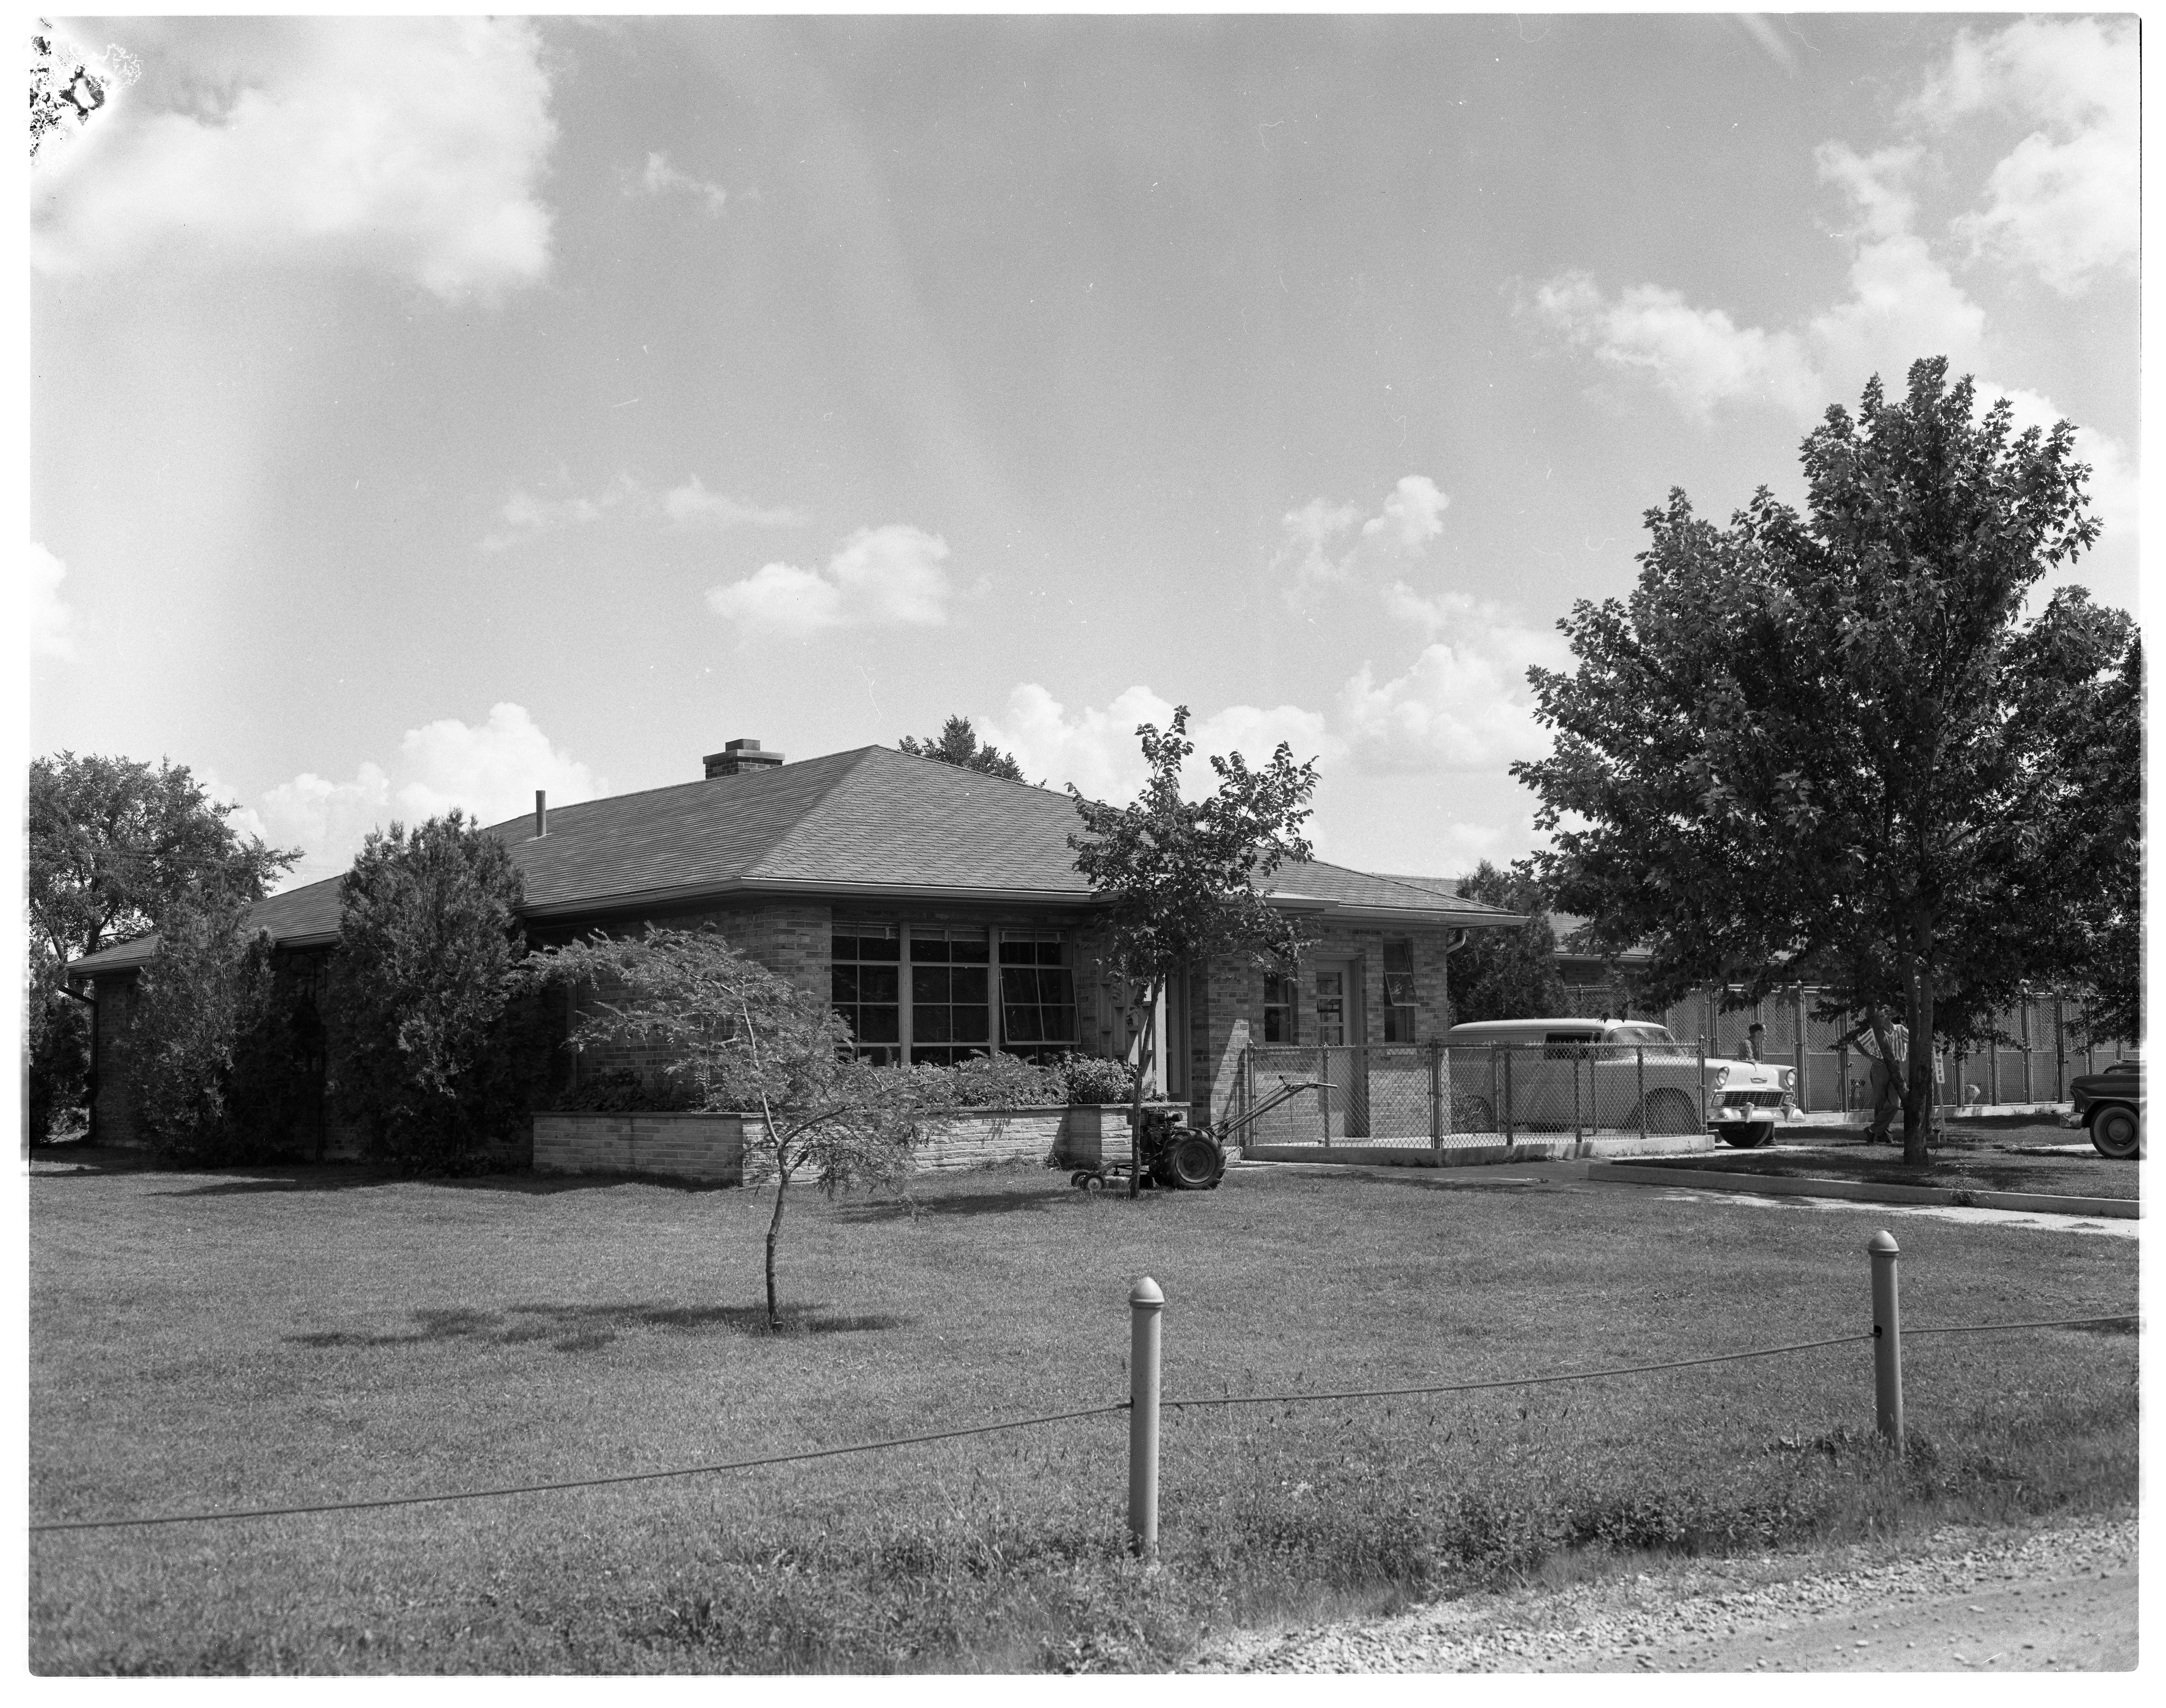 Humane Society Headquarters, Cherry Hill Rd., August 1956 image